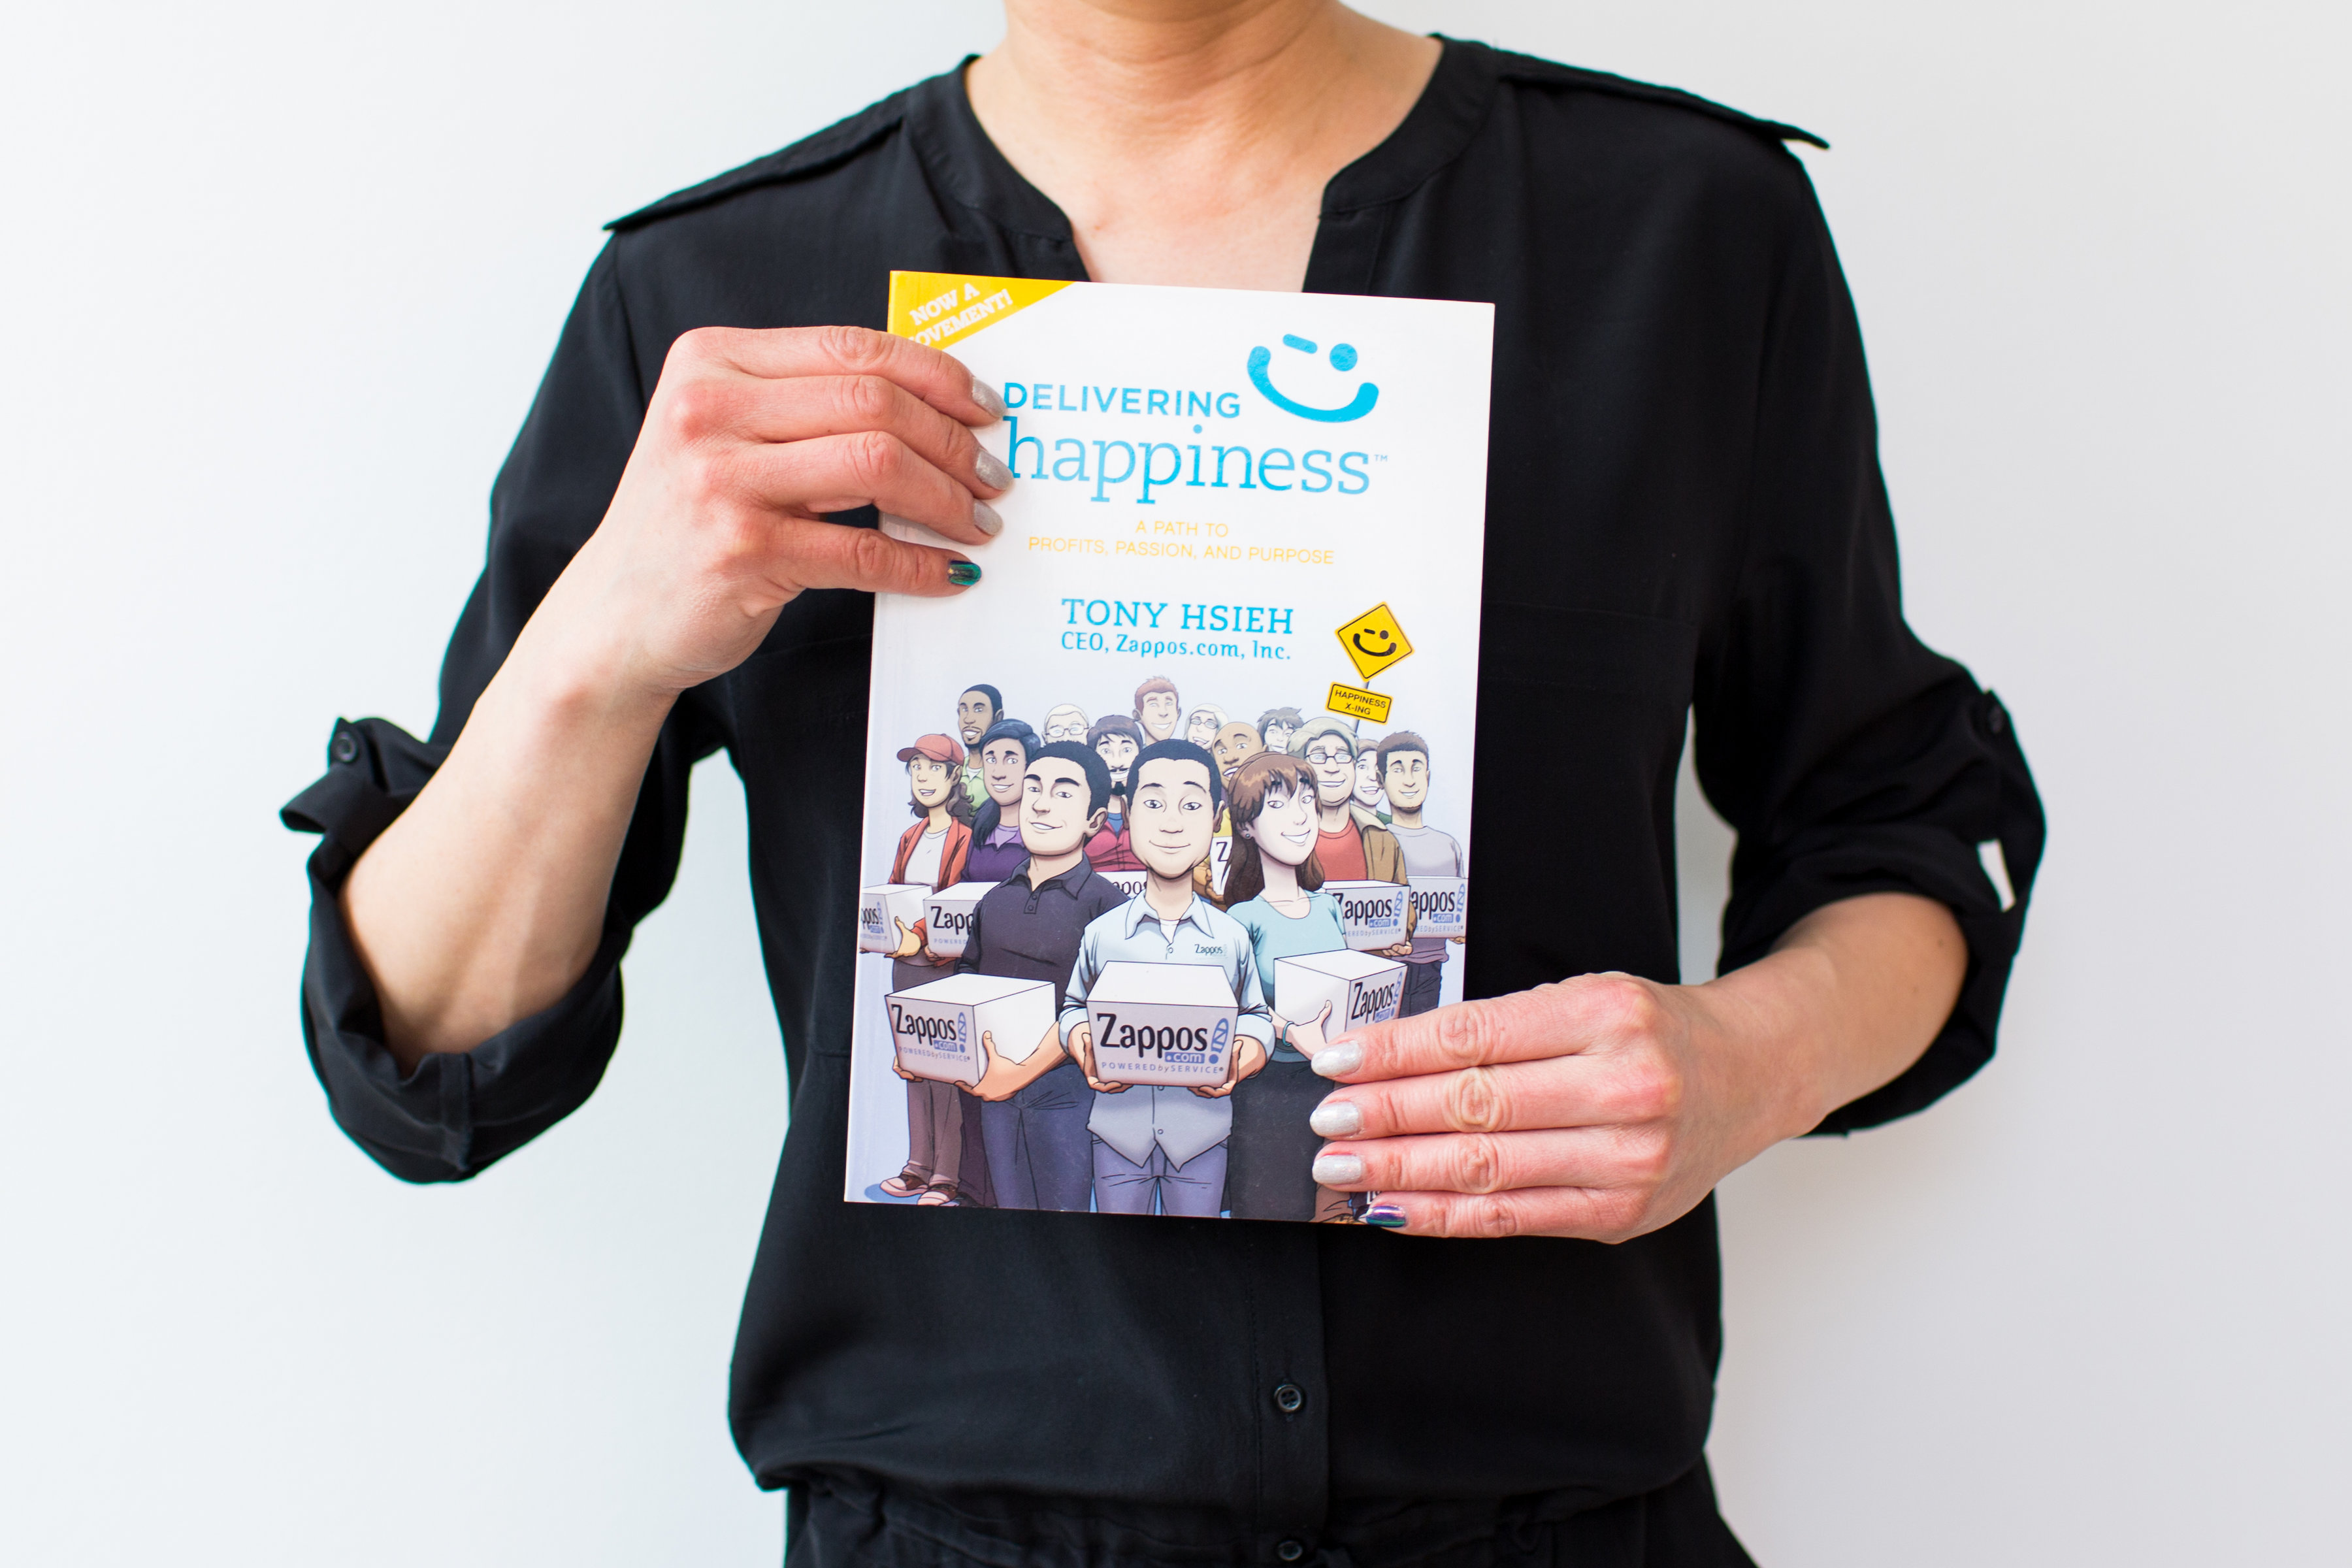 delivering happiness the book jenn lim tony hsieh webinar event